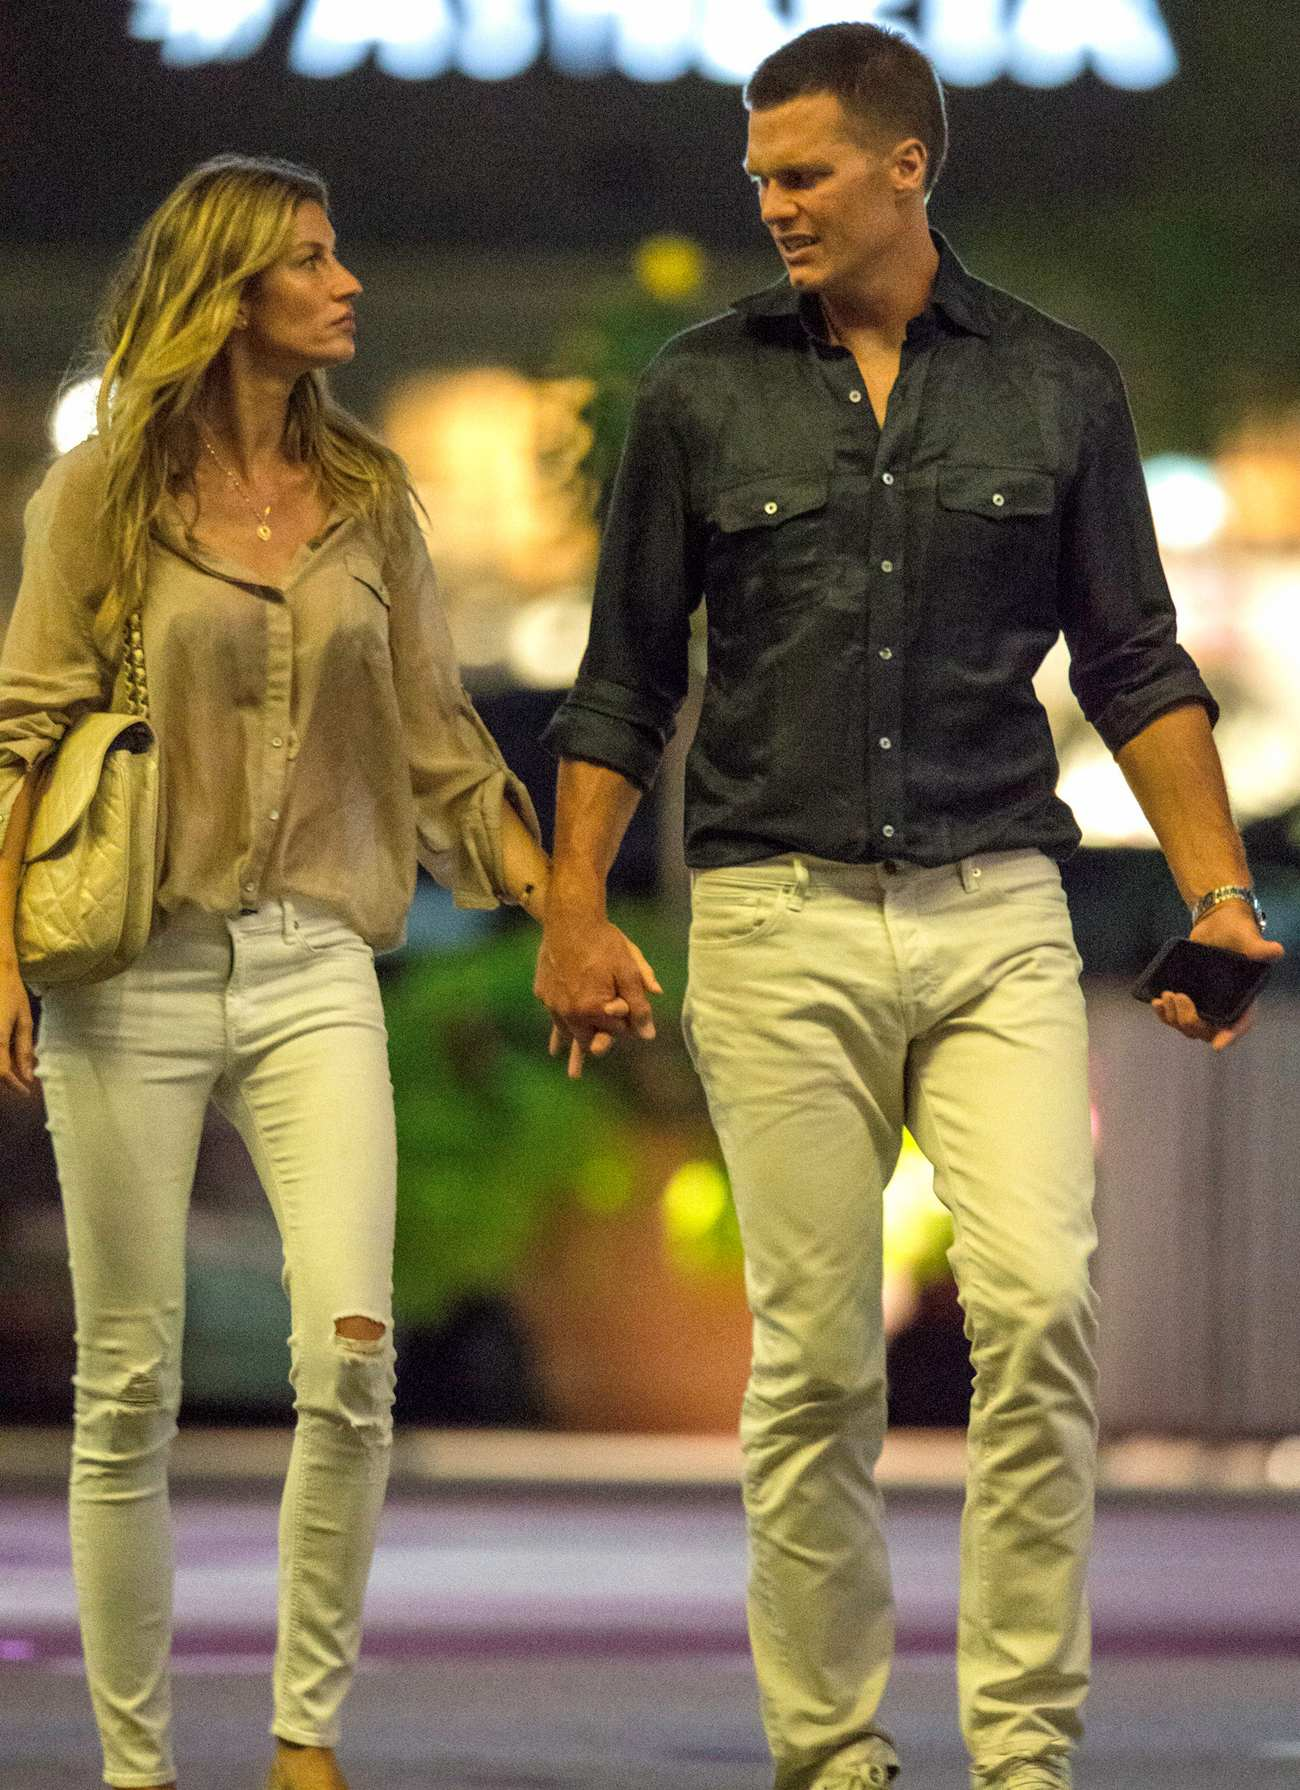 Gisele Bundchen and Tom Brady Hand in Hand Leaving Movie Theatre-3